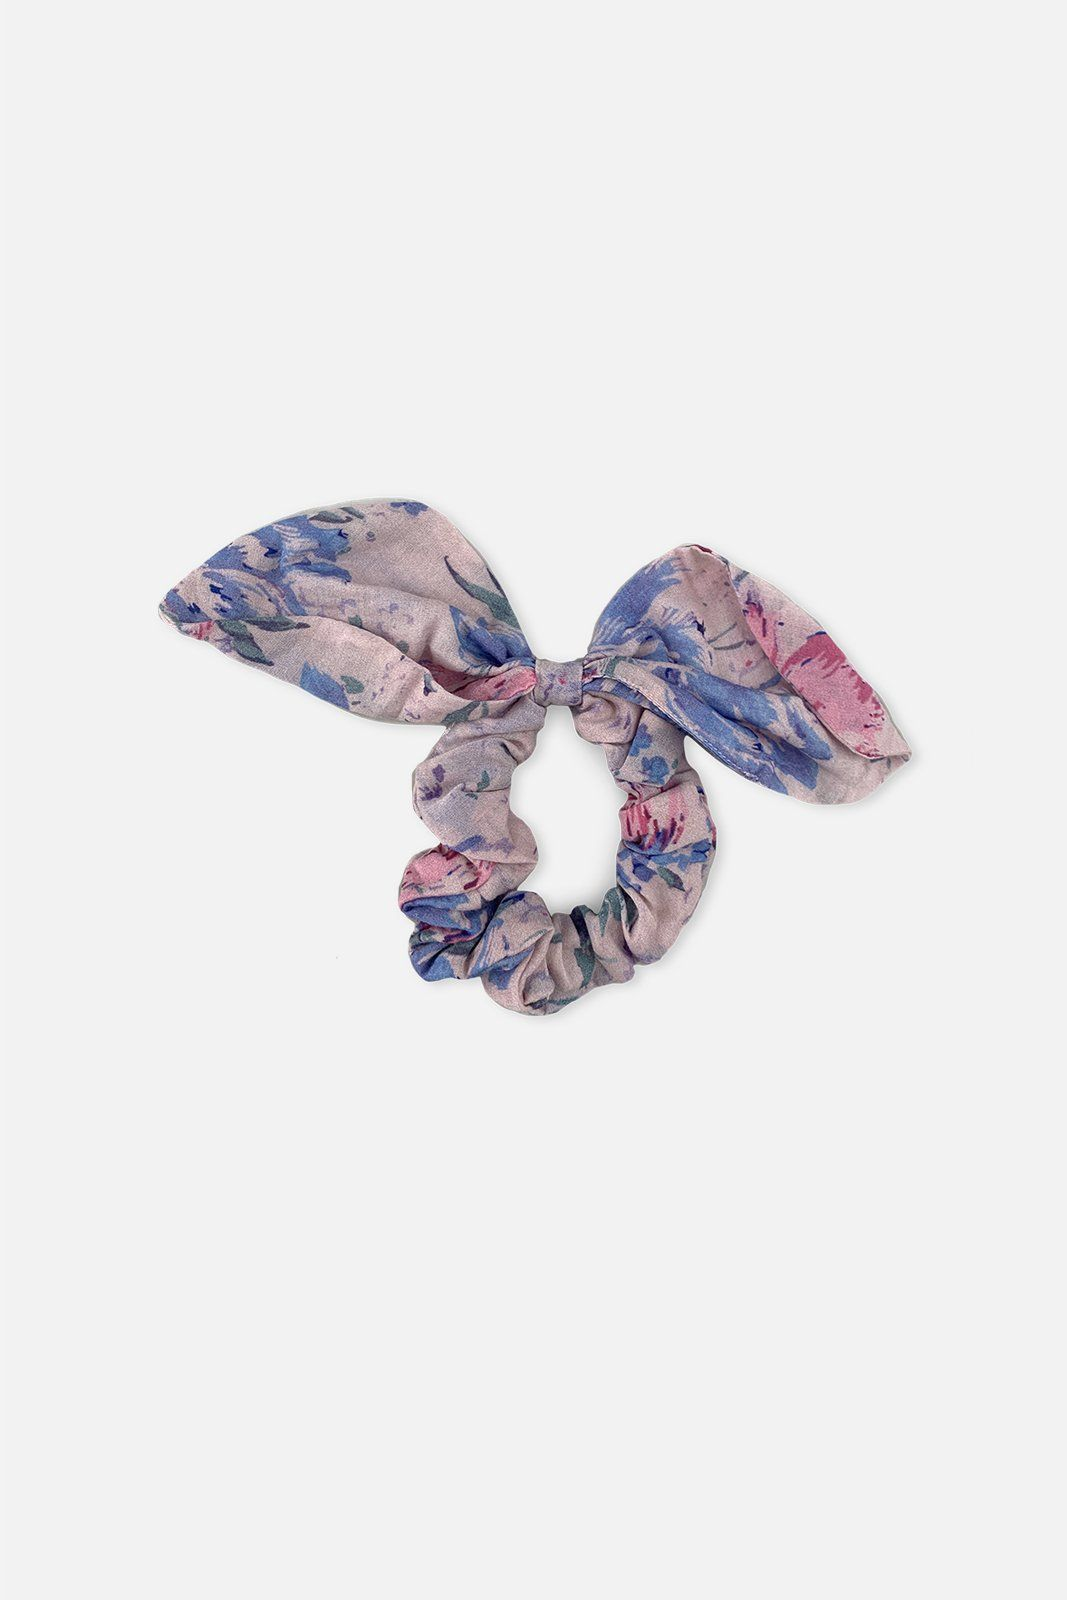 Printed Elasticized One size | Bandier X Loveshackfancy Barefoot In The Sand Scrunchies